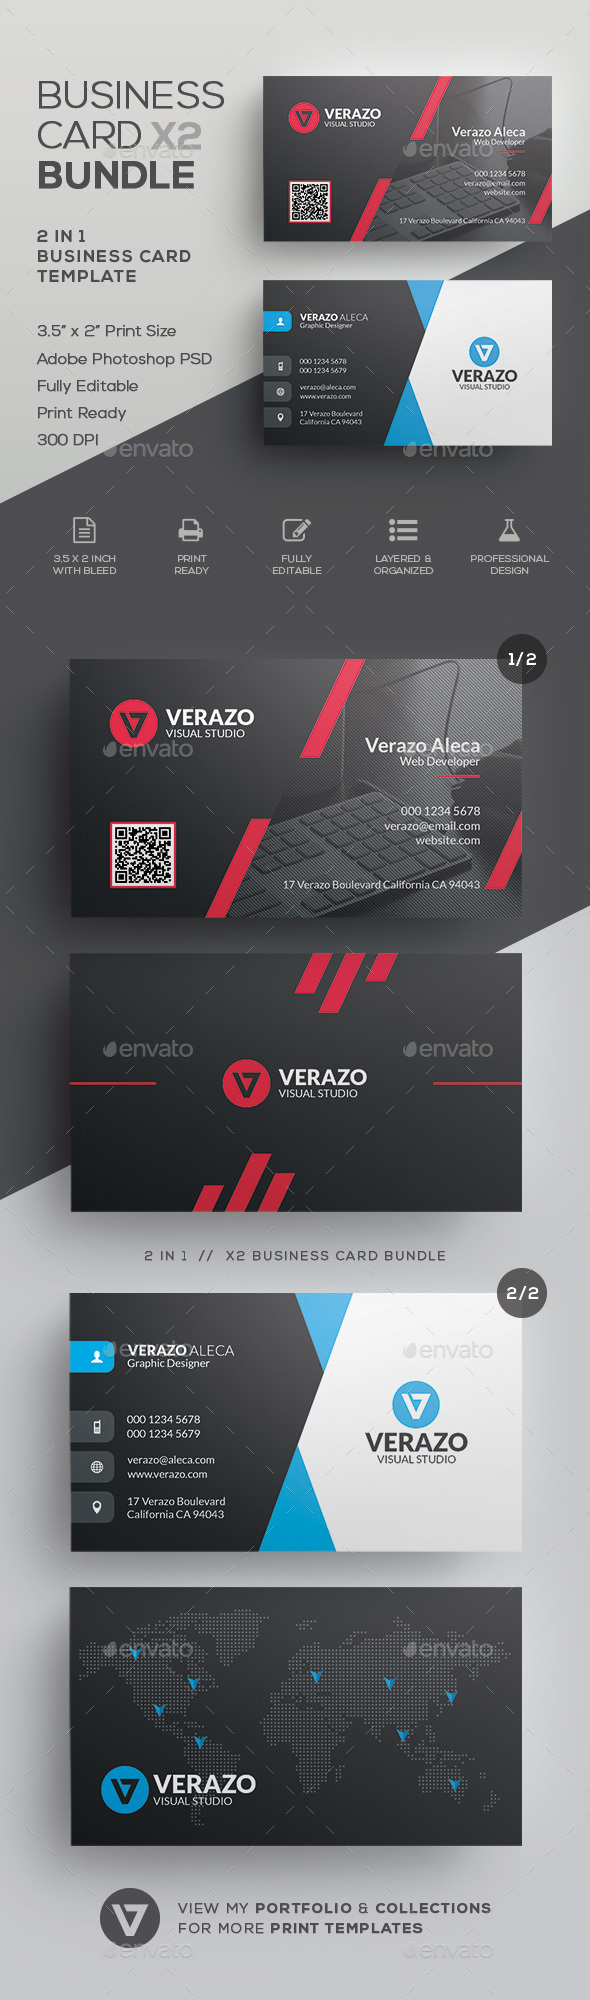 Business Card Bundle 50 by verazo | GraphicRiver